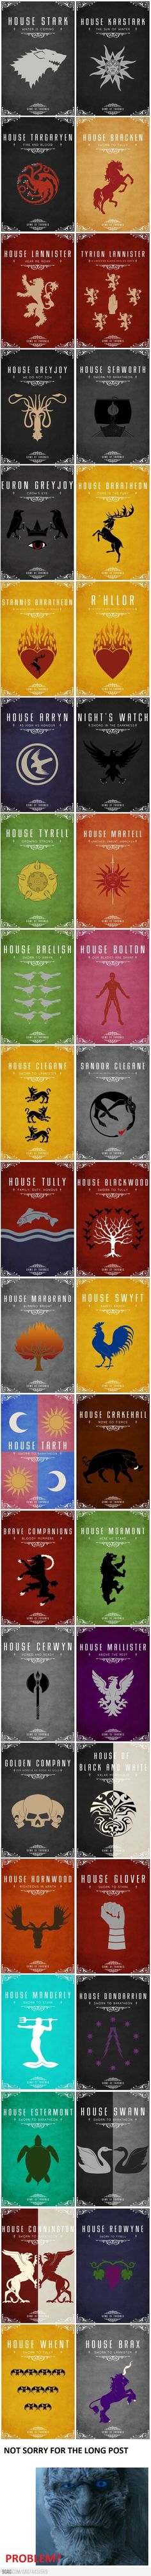 All the Houses in the Song of Ice and Fire